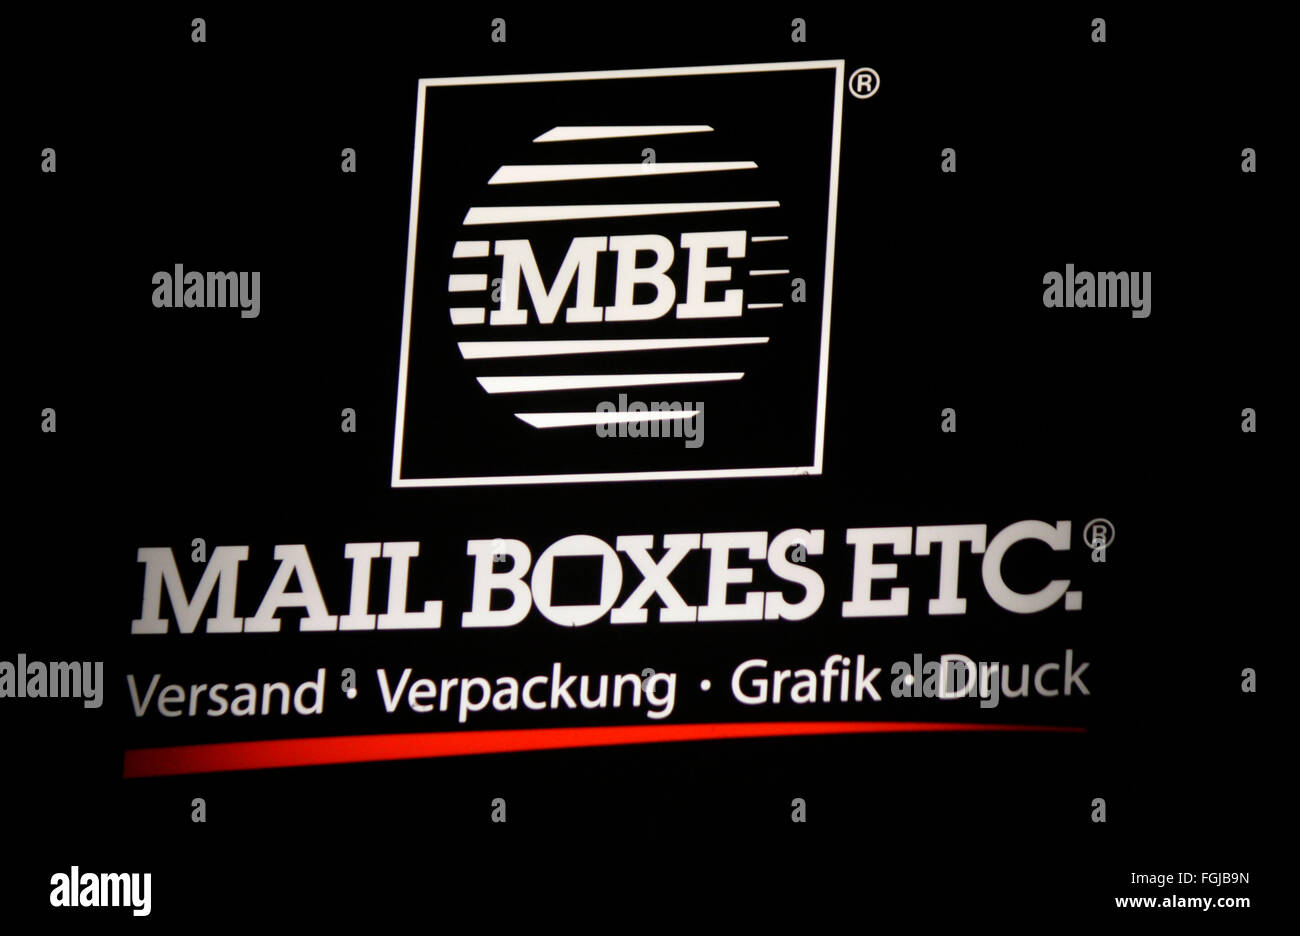 Markenname Mbe Mail Boxes Etc Berlin Stock Photo Alamy